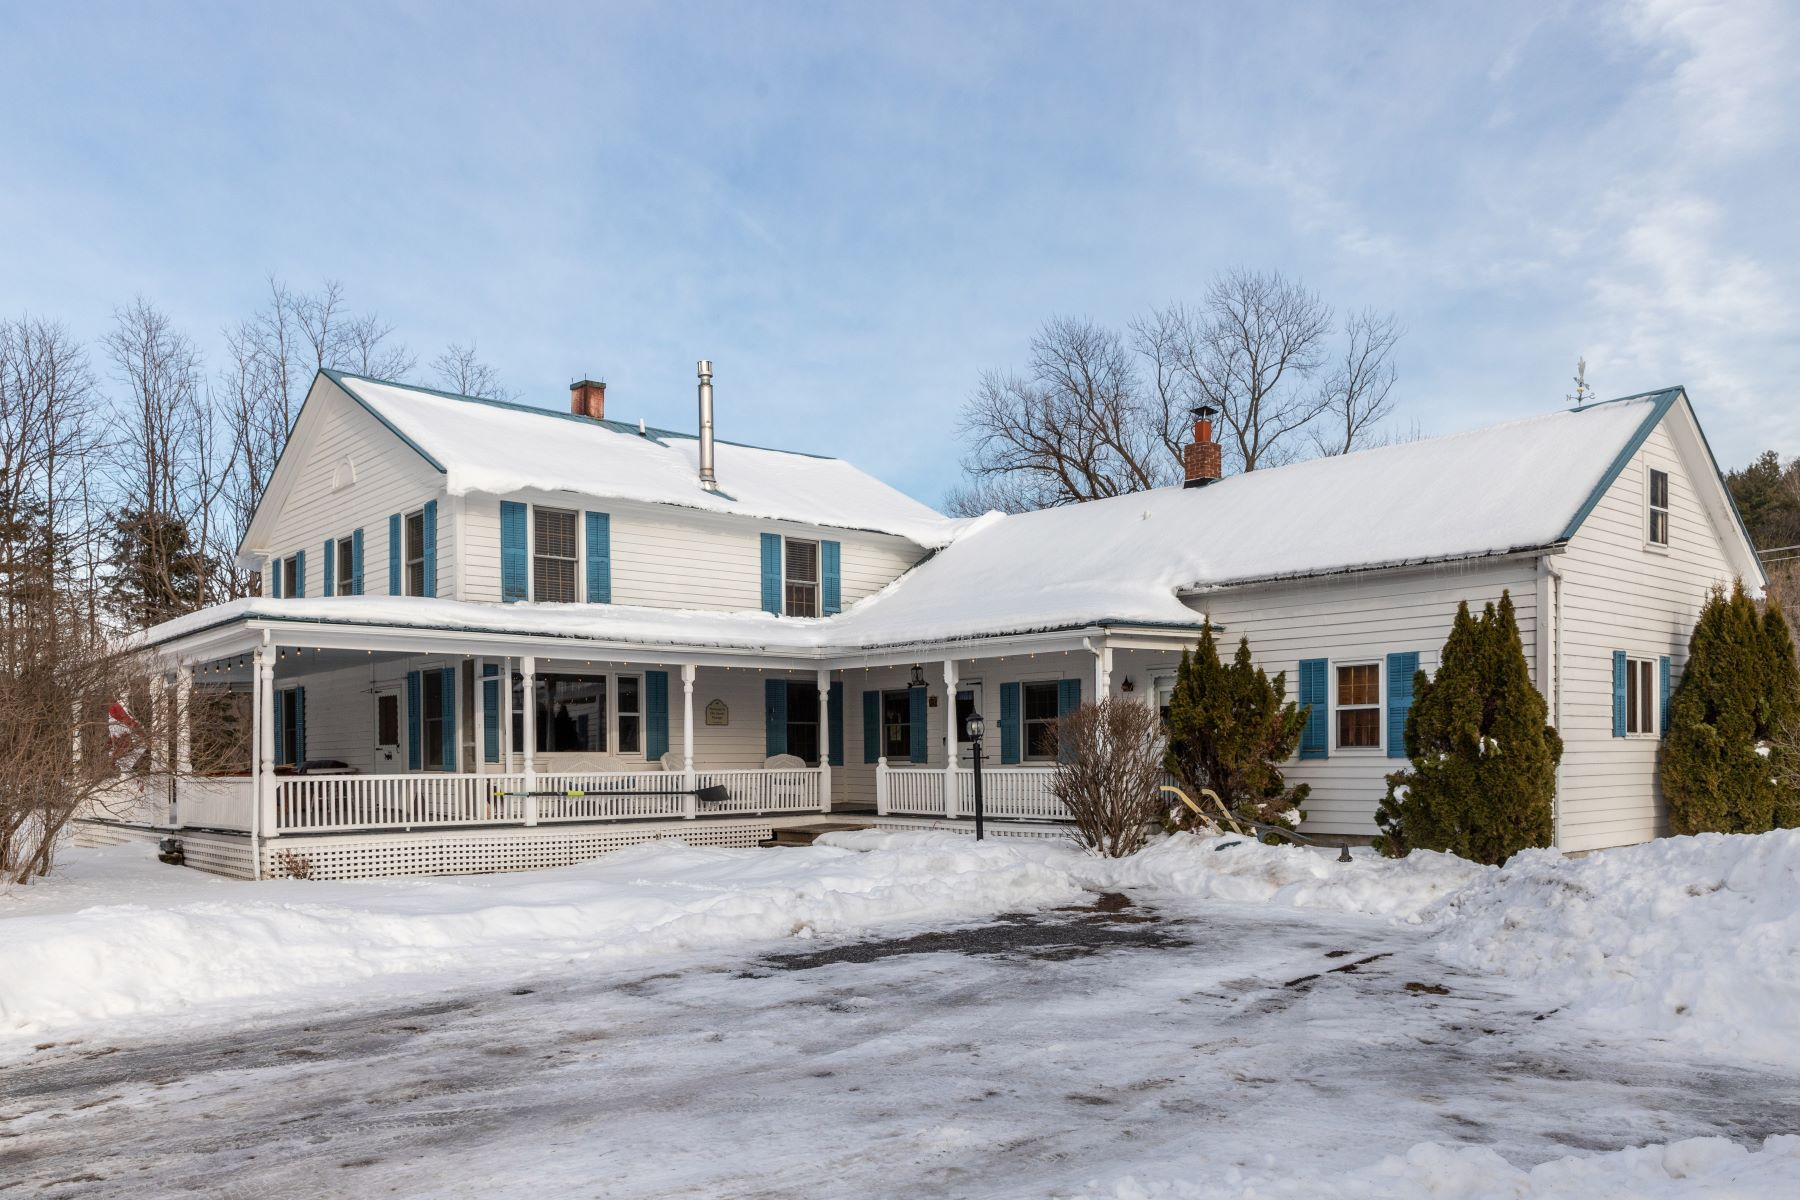 Single Family Homes for Sale at 384 West Milton Road, Milton 384 West Milton Rd Milton, Vermont 05468 United States